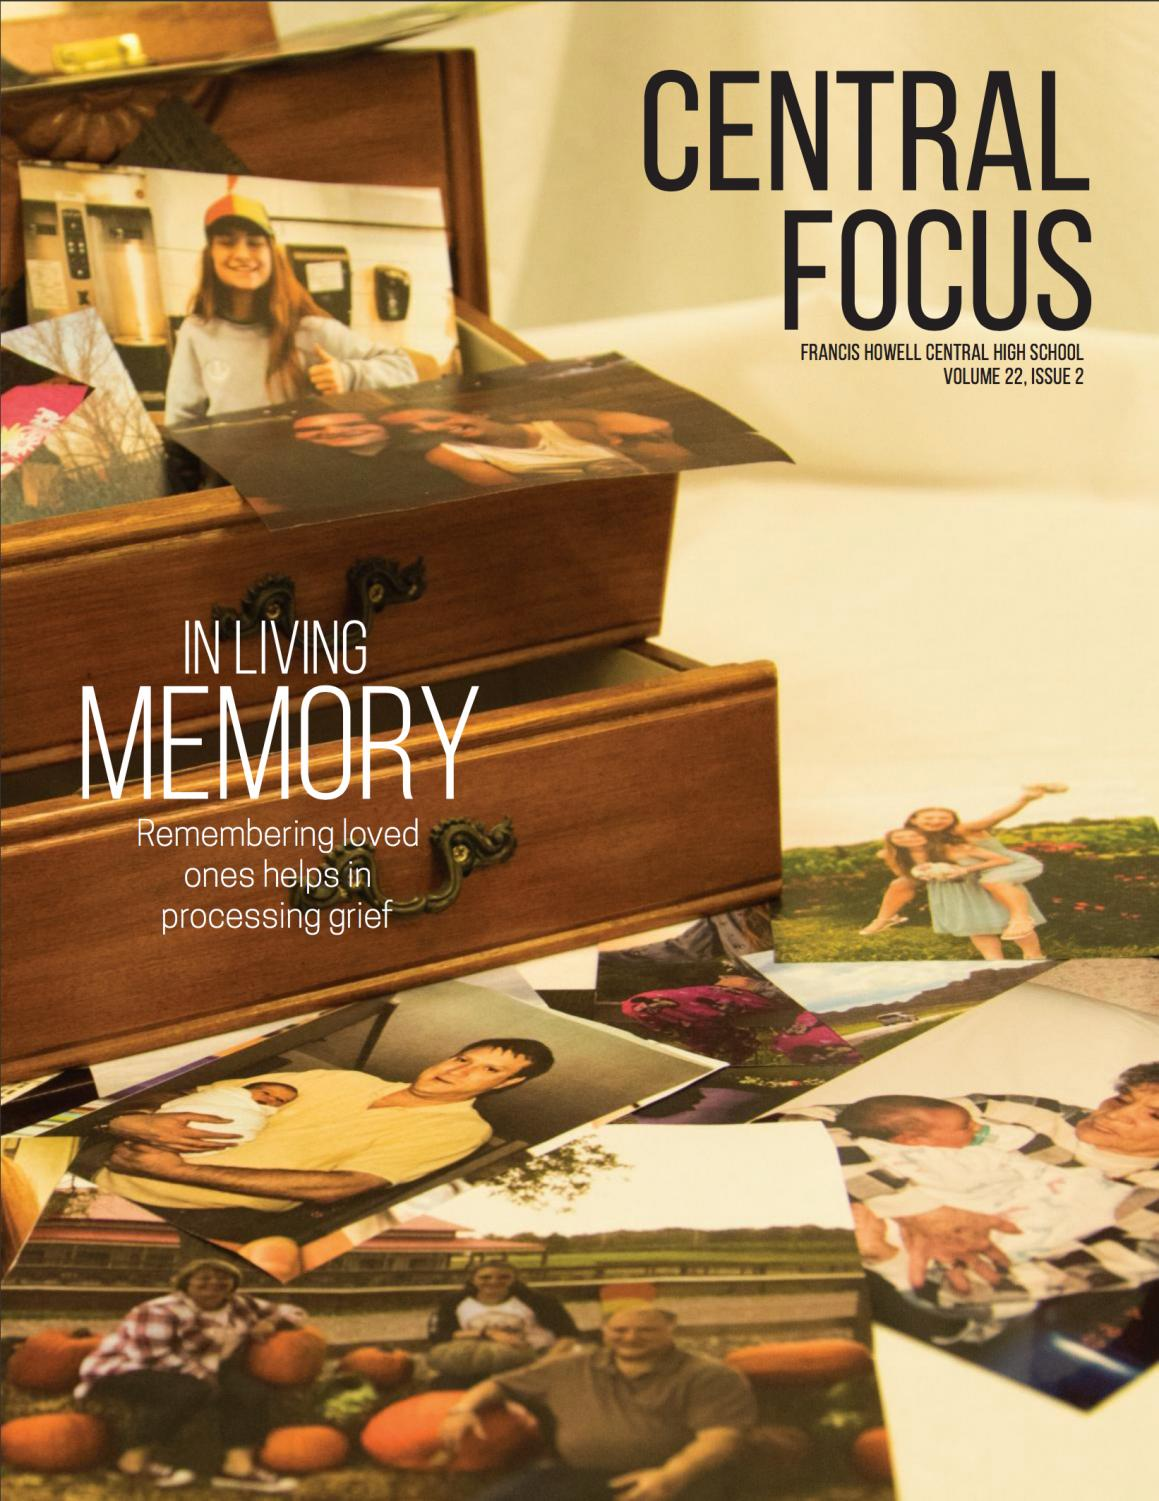 The cover from the Central Focus' October 2018 issue.